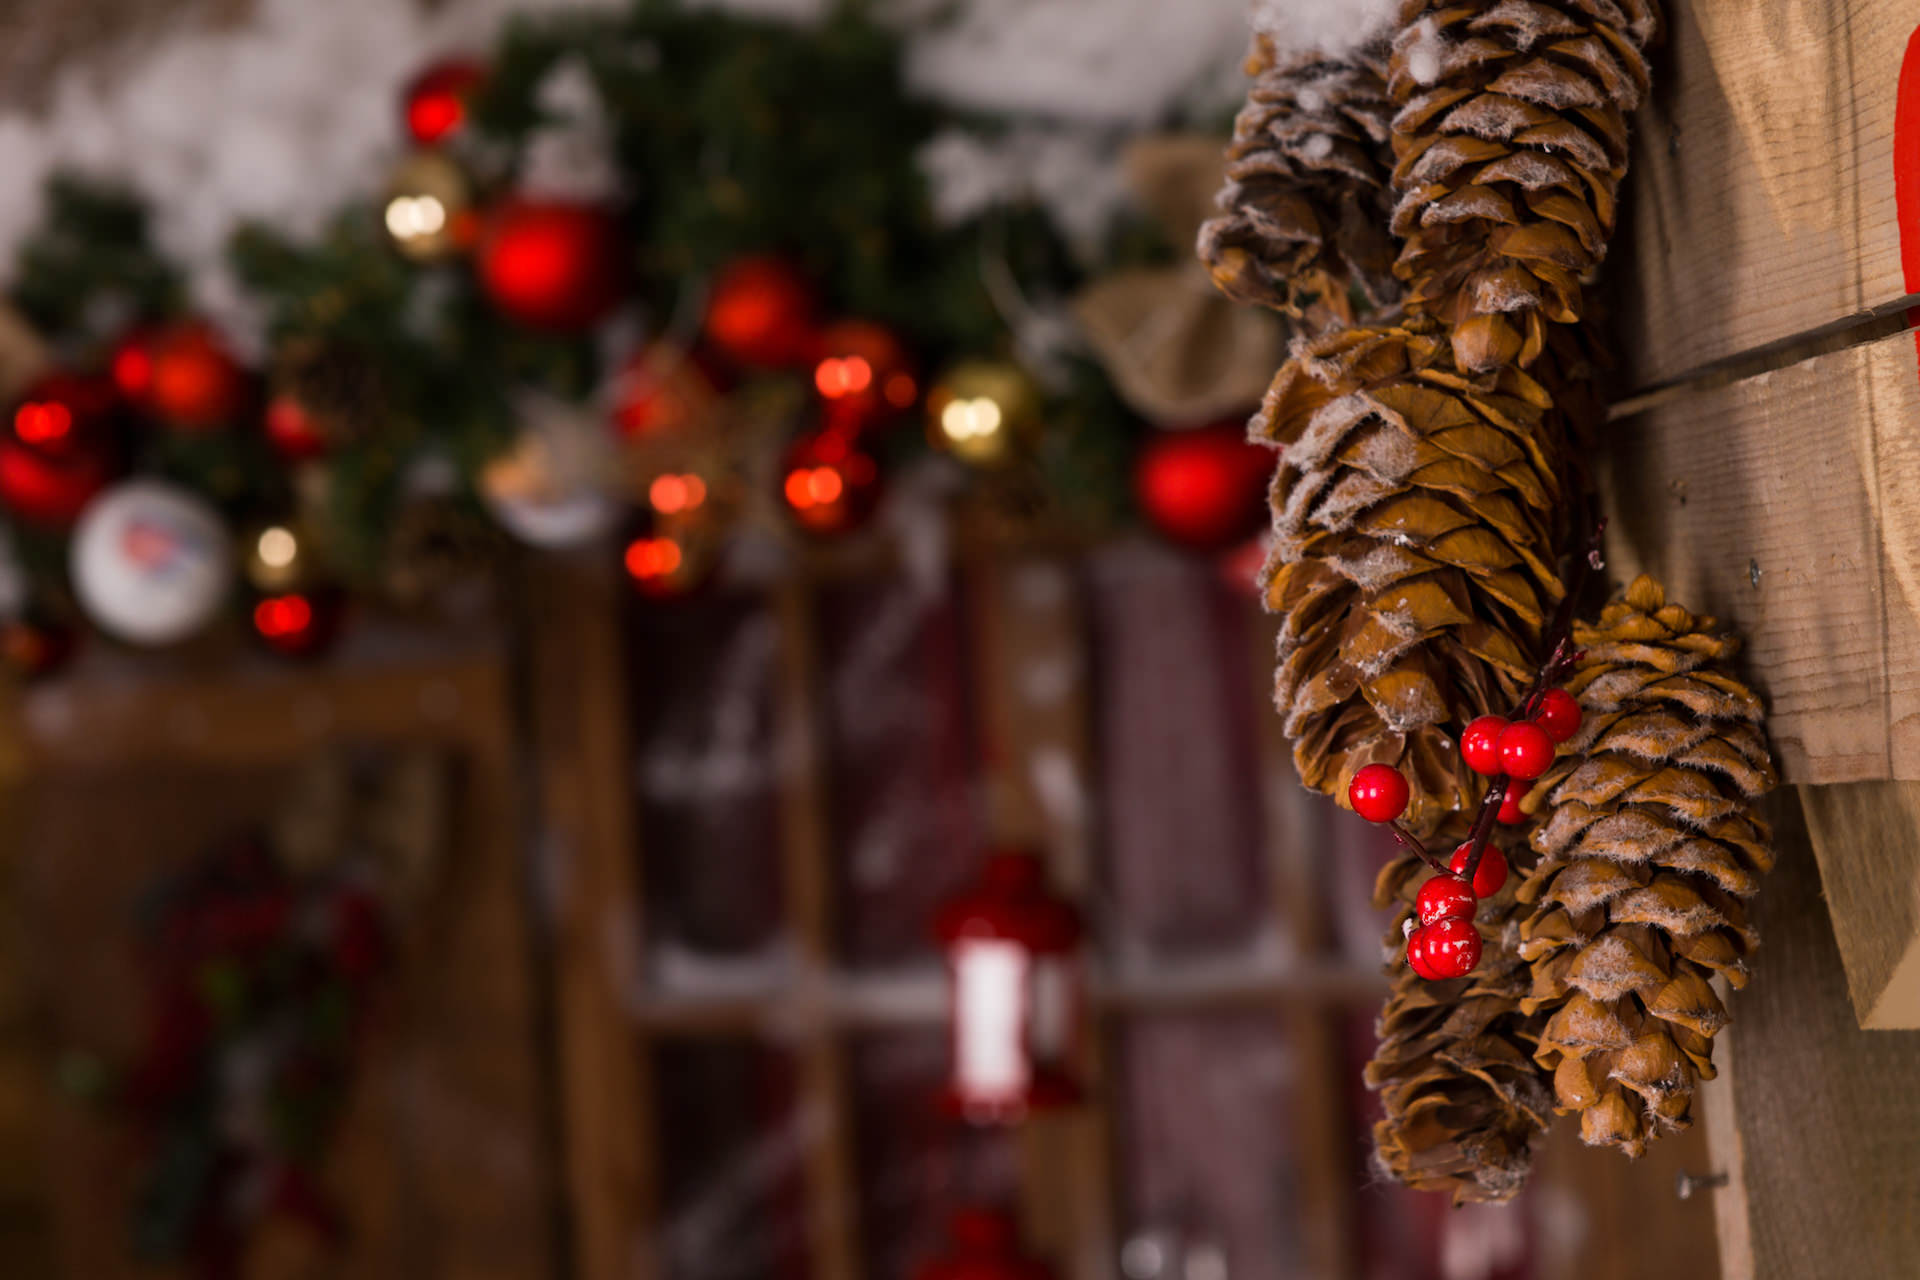 Macro Brown Pine Cone Christmas Decors with Red Cherries Hanging on Wooden Wall Inside the House.